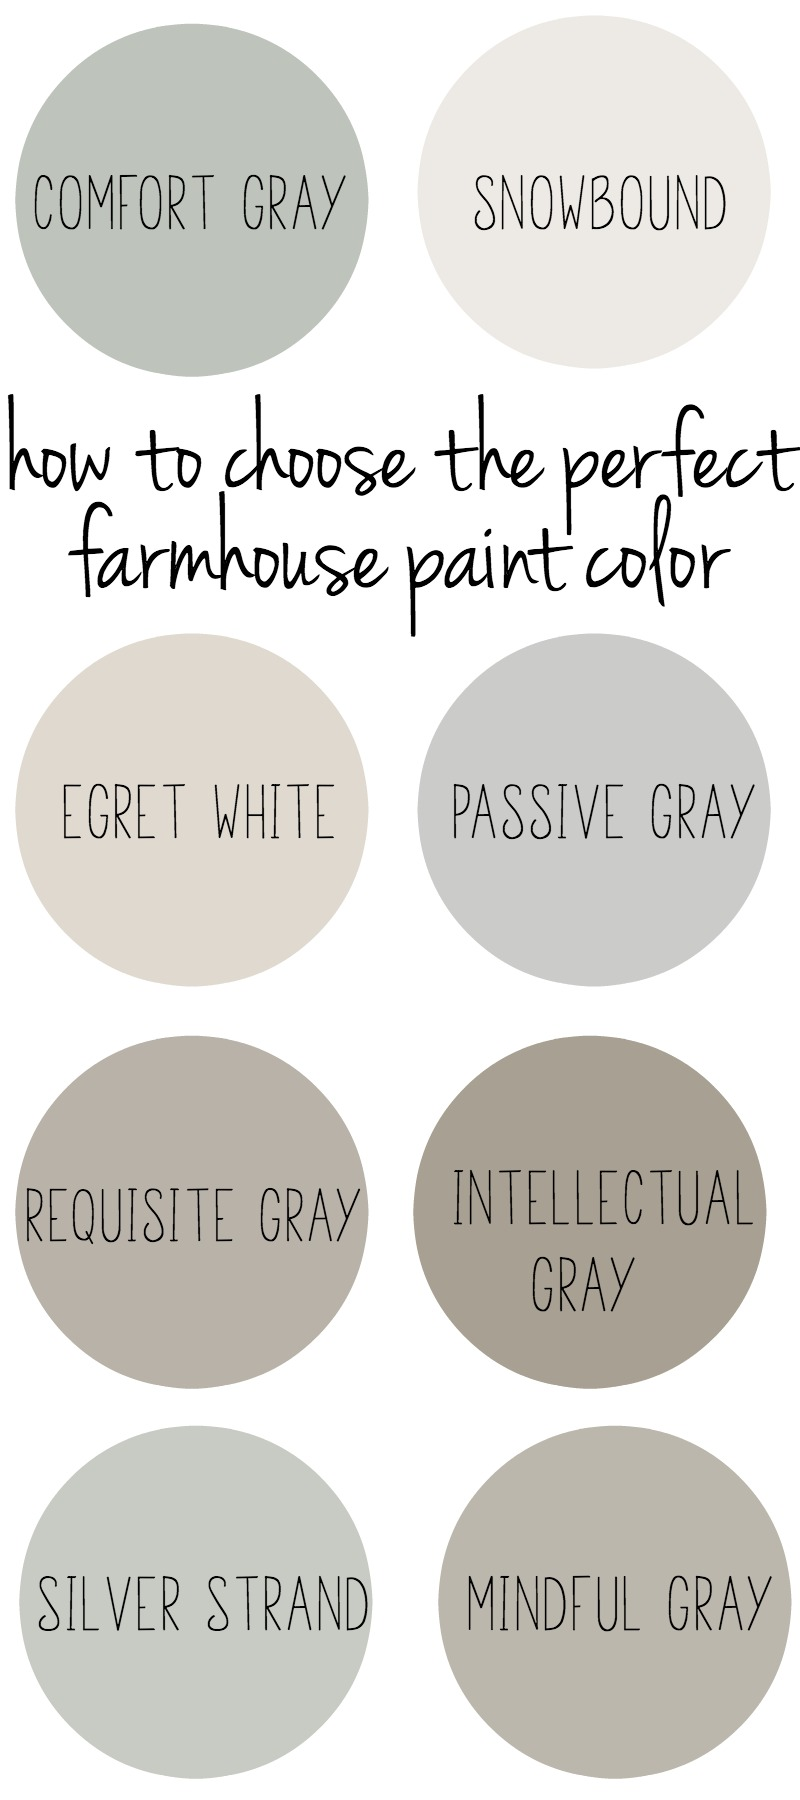 95 Farmhouse Color Scheme Sherwin Williams Sherwin Williams Peppercorn Gray Sw7640 Fawn